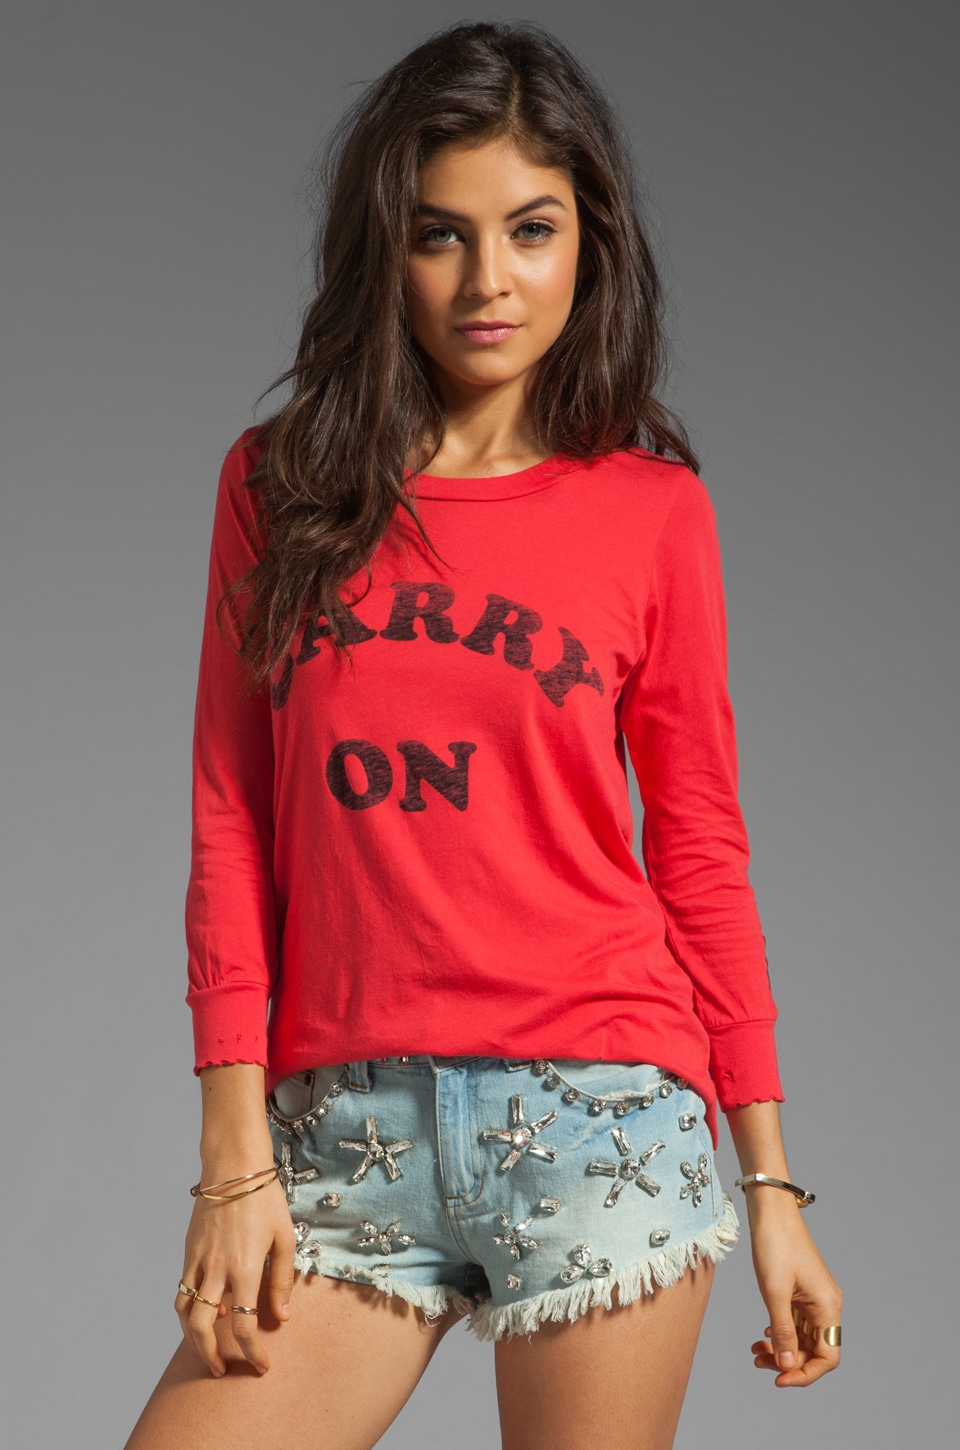 Rebel Yell Cross Country Crew in Rebel Red